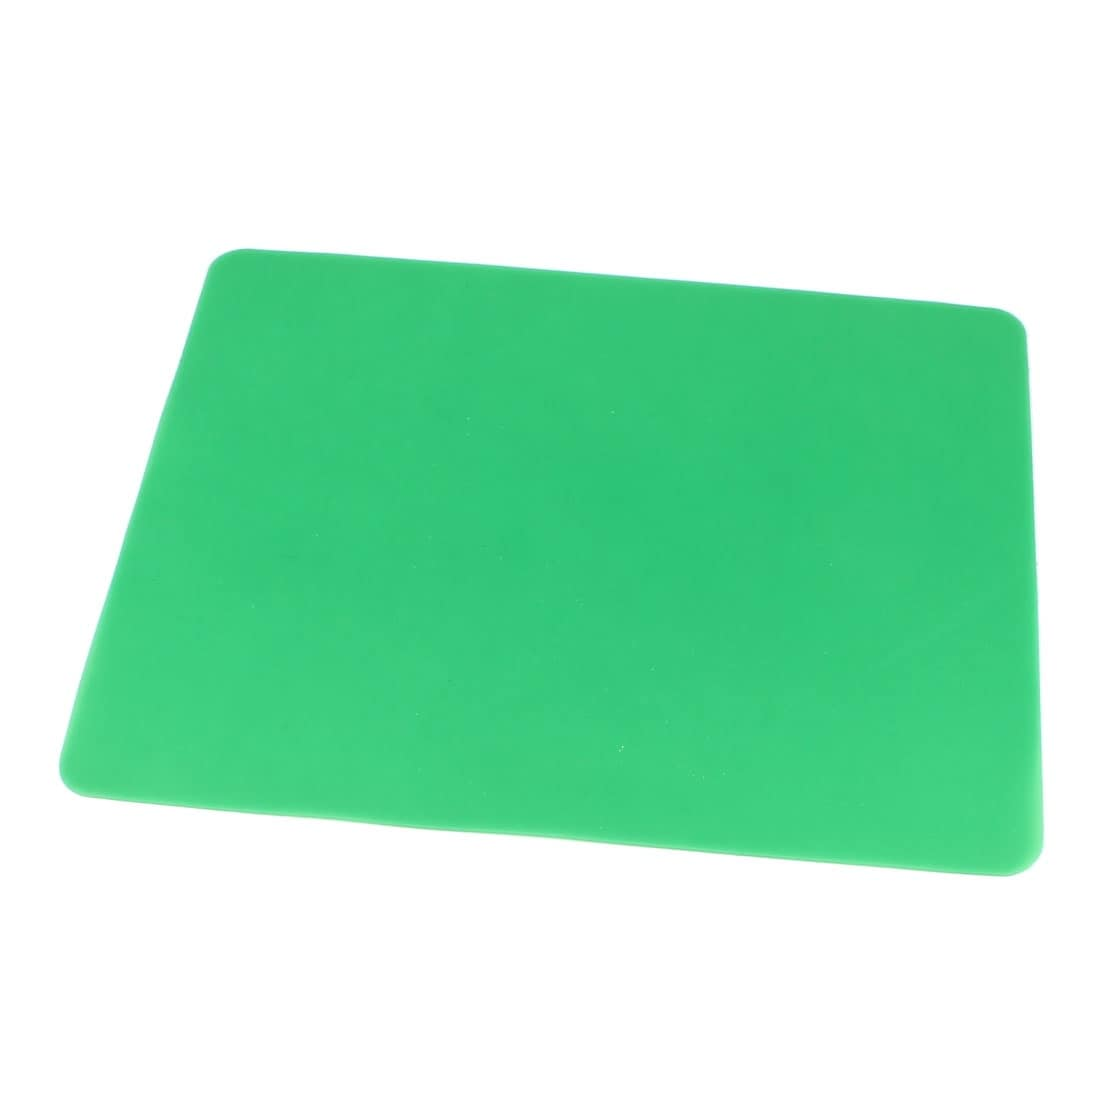 Unique Bargains Dark Green Antislip Silicone Laptop Pc Mouse Pad Mat Circuit Board Mats Pads 23cm X 19cm Free Shipping On Orders Over 45 24385472